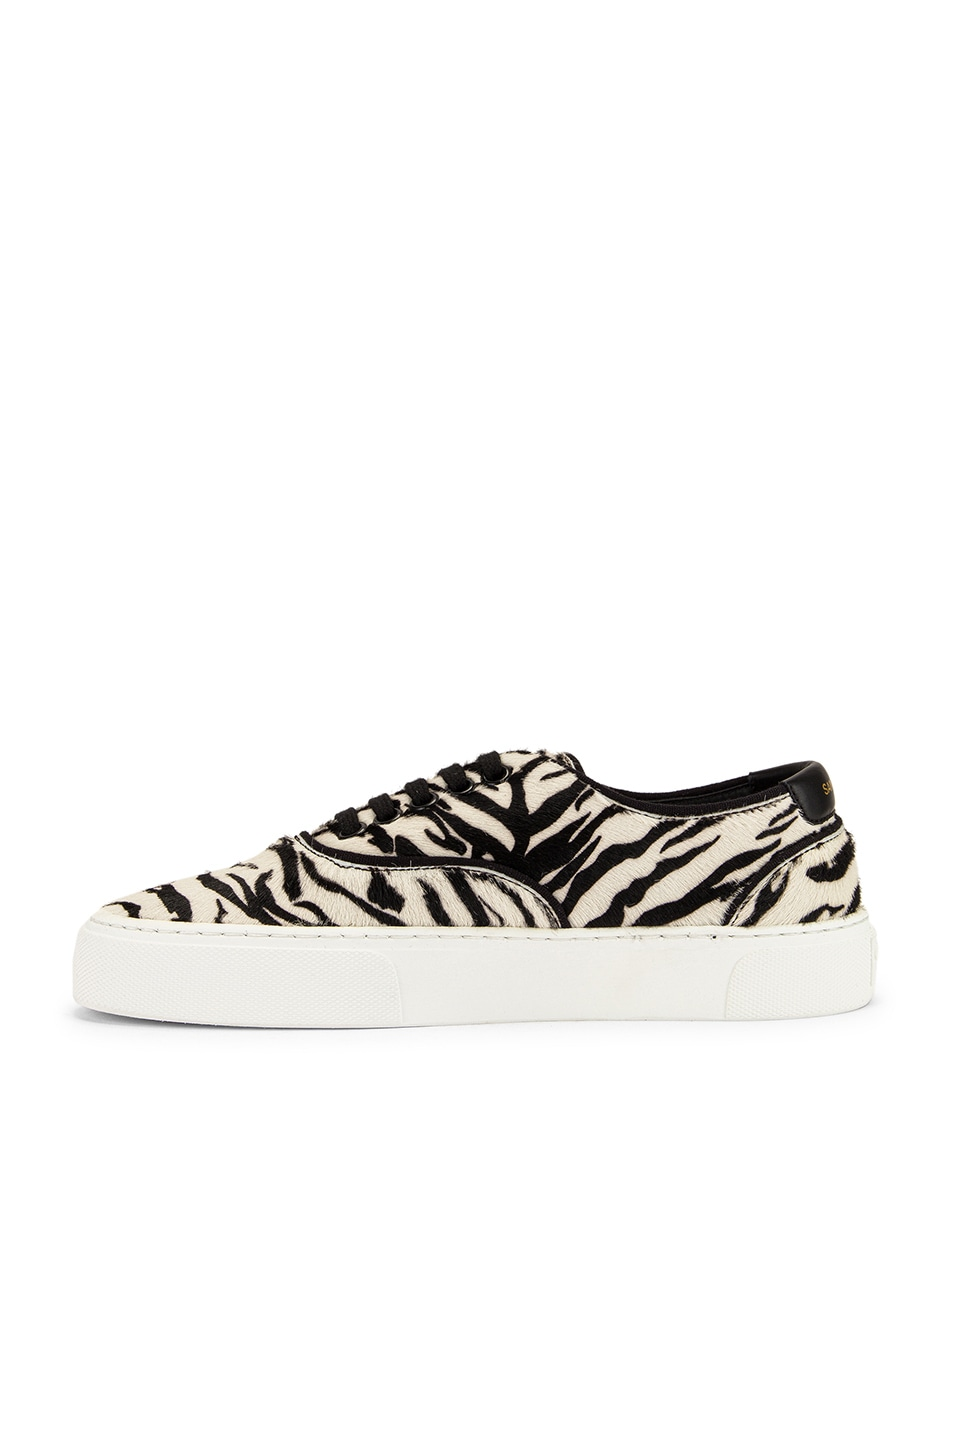 Image 5 of Saint Laurent Zebra Low Top Sneakers in Black & White